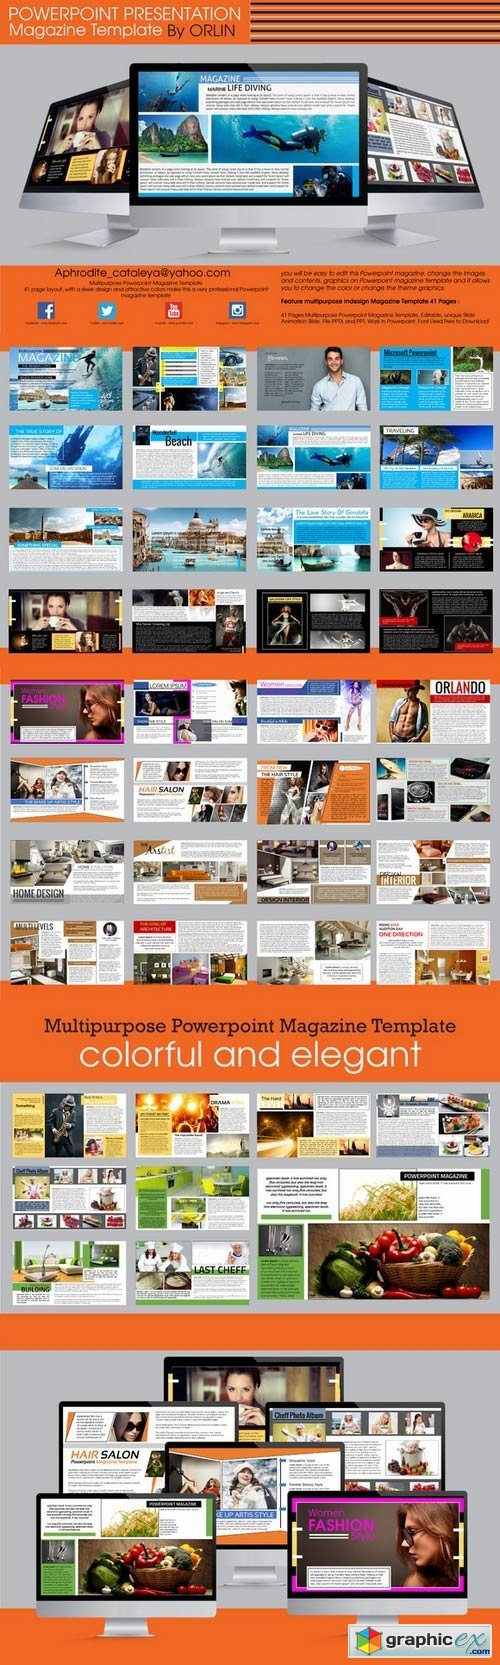 Powerpoint magazine template 360601 free download vector stock powerpoint magazine template 360601 alramifo Gallery